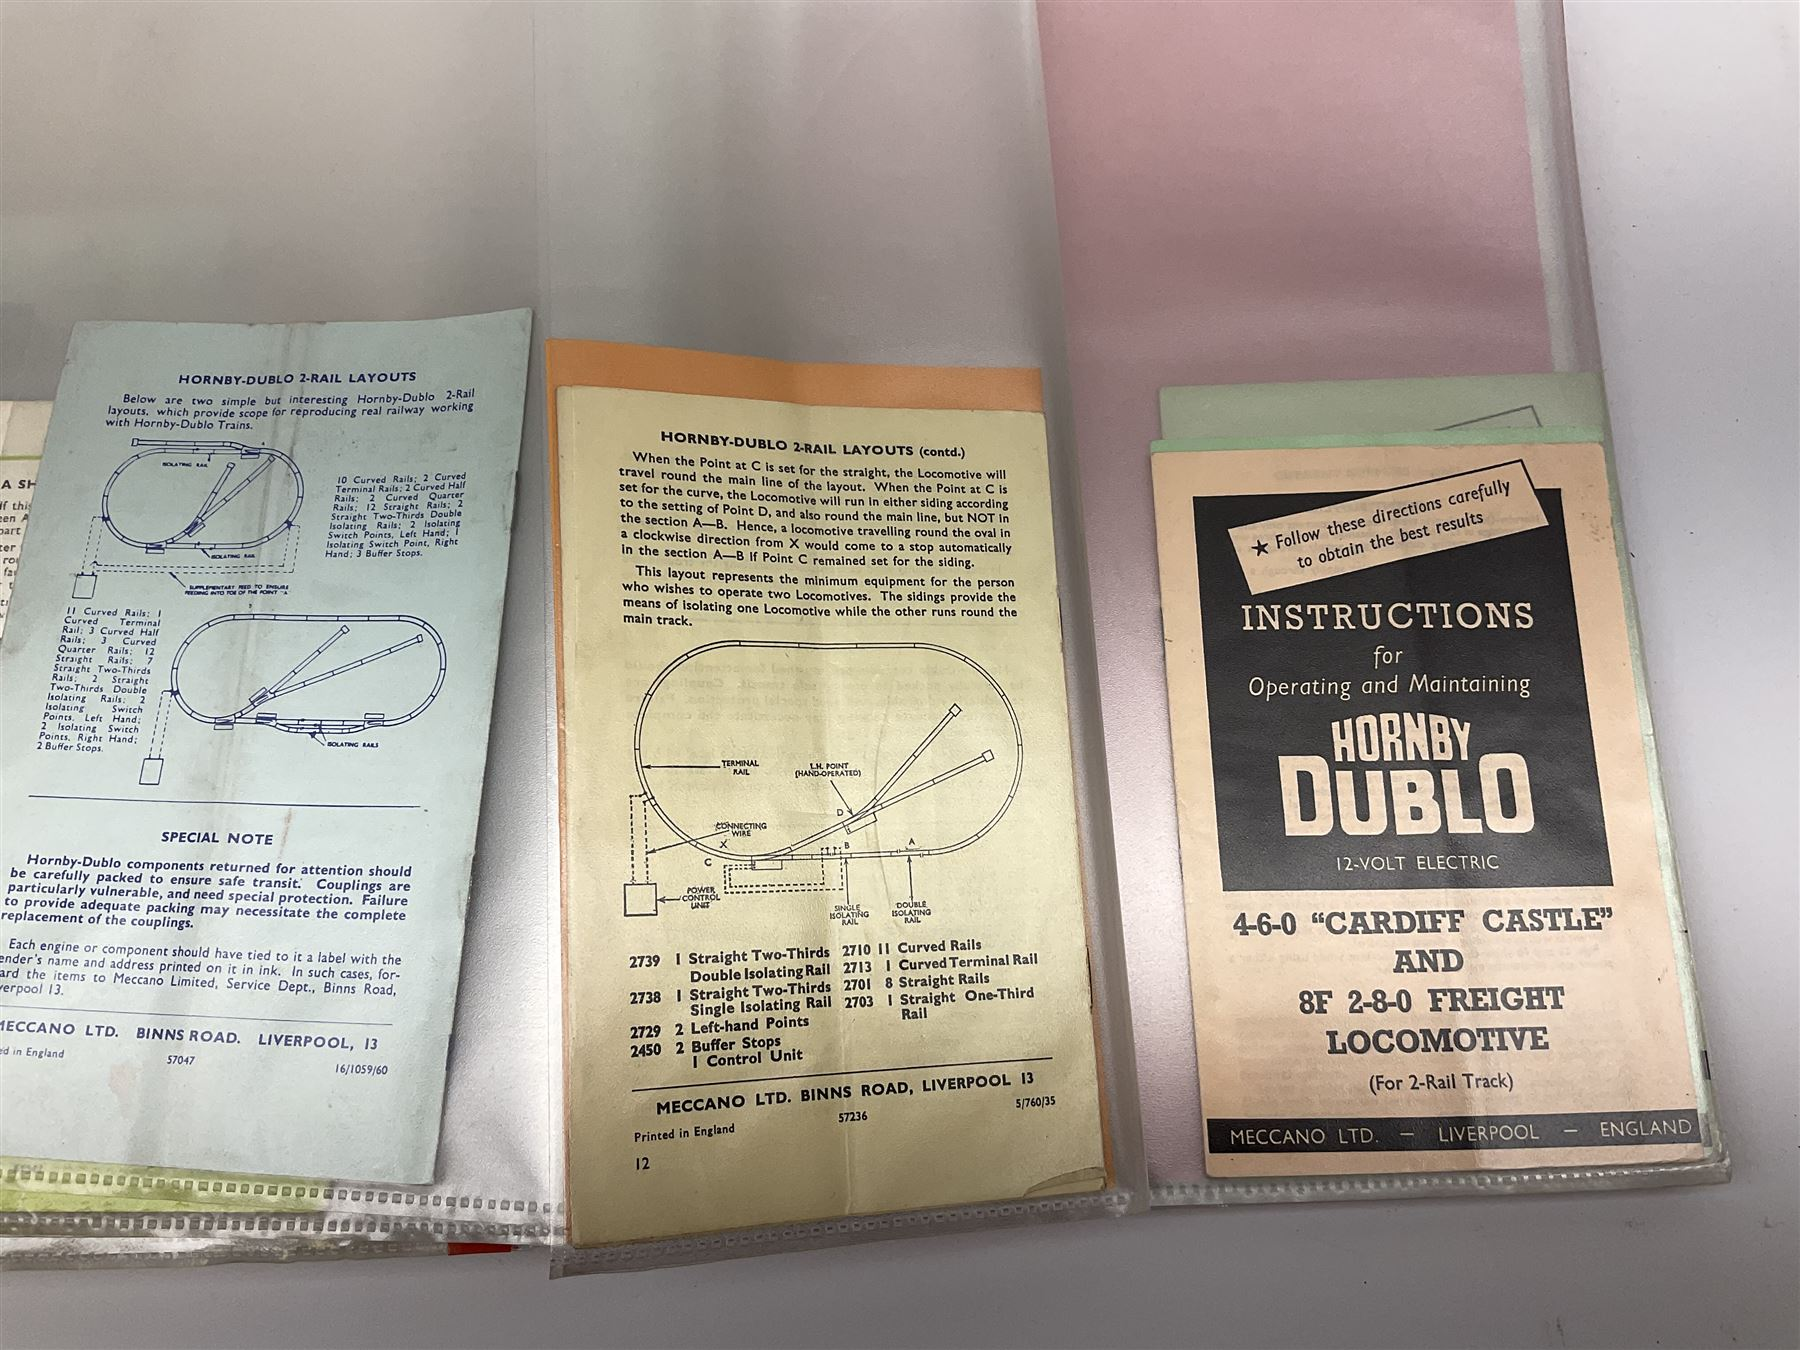 Modern loose leaf binder containing over sixty 1940s - 1960s Hornby Dublo booklets and paper ephemer - Image 3 of 7